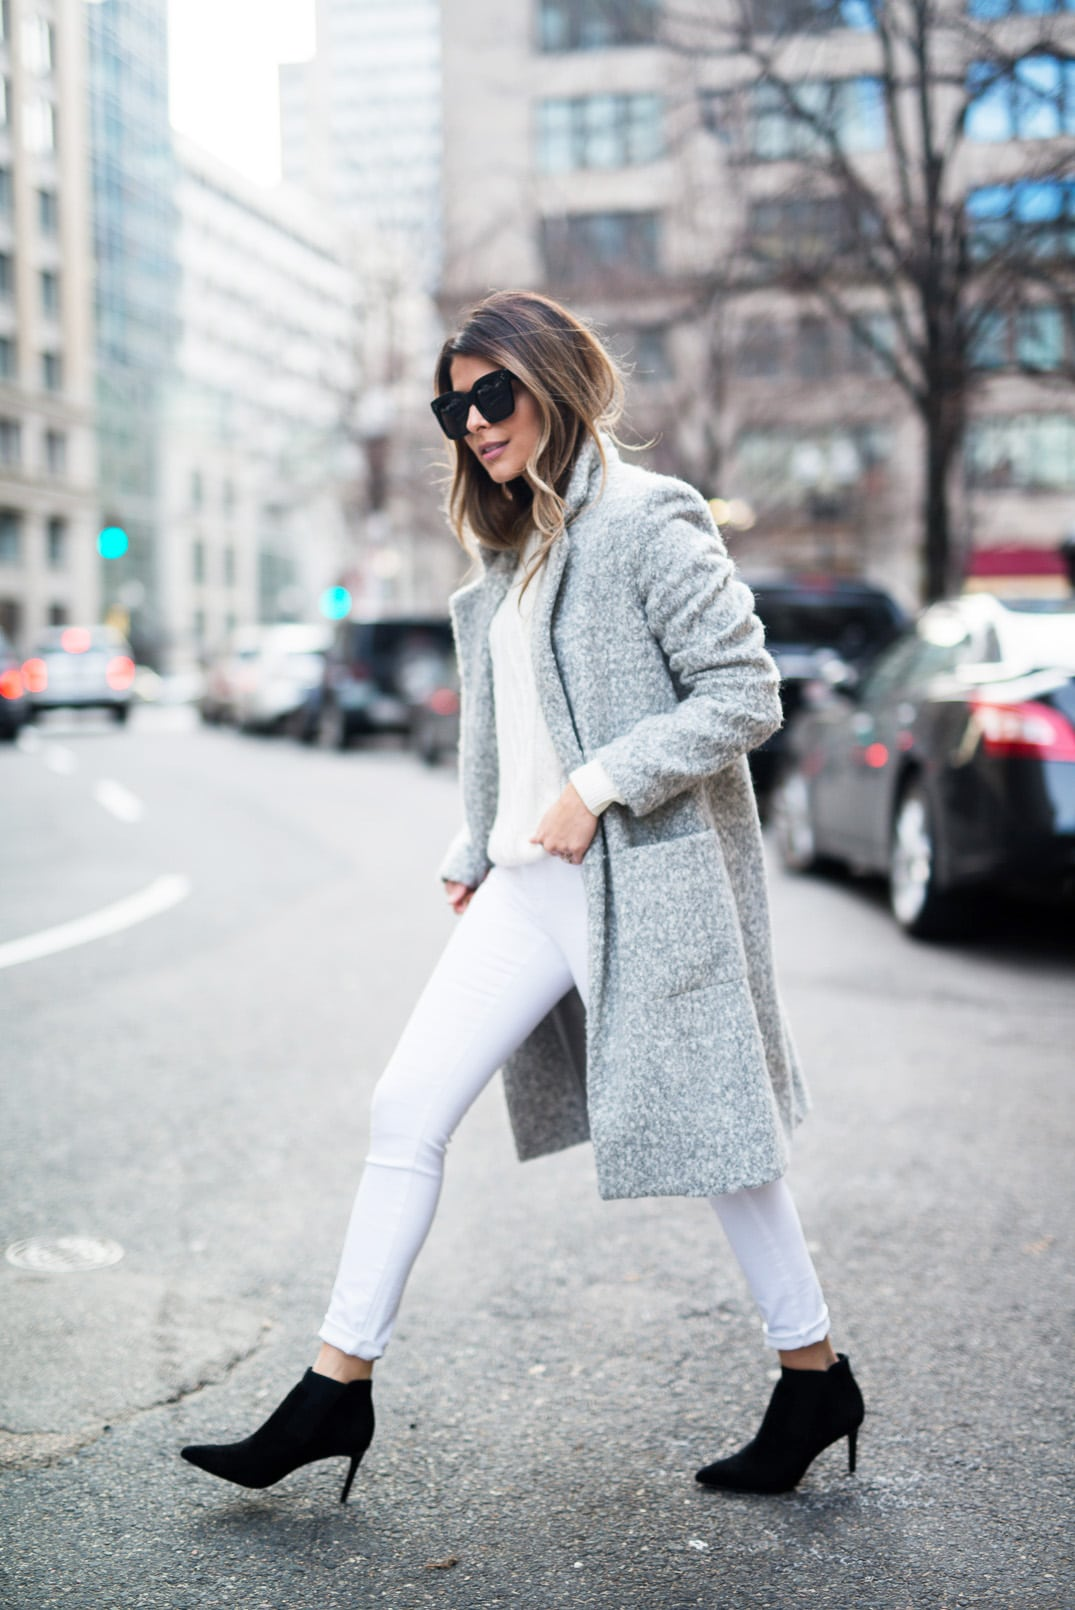 Pam Hetlinger, The Girl From Panama, wearing a Zac Posen Gray Coat, White Jeans, White Sweater, Black booties, Celine Sunglasses. The easiest way to style a gray coat.